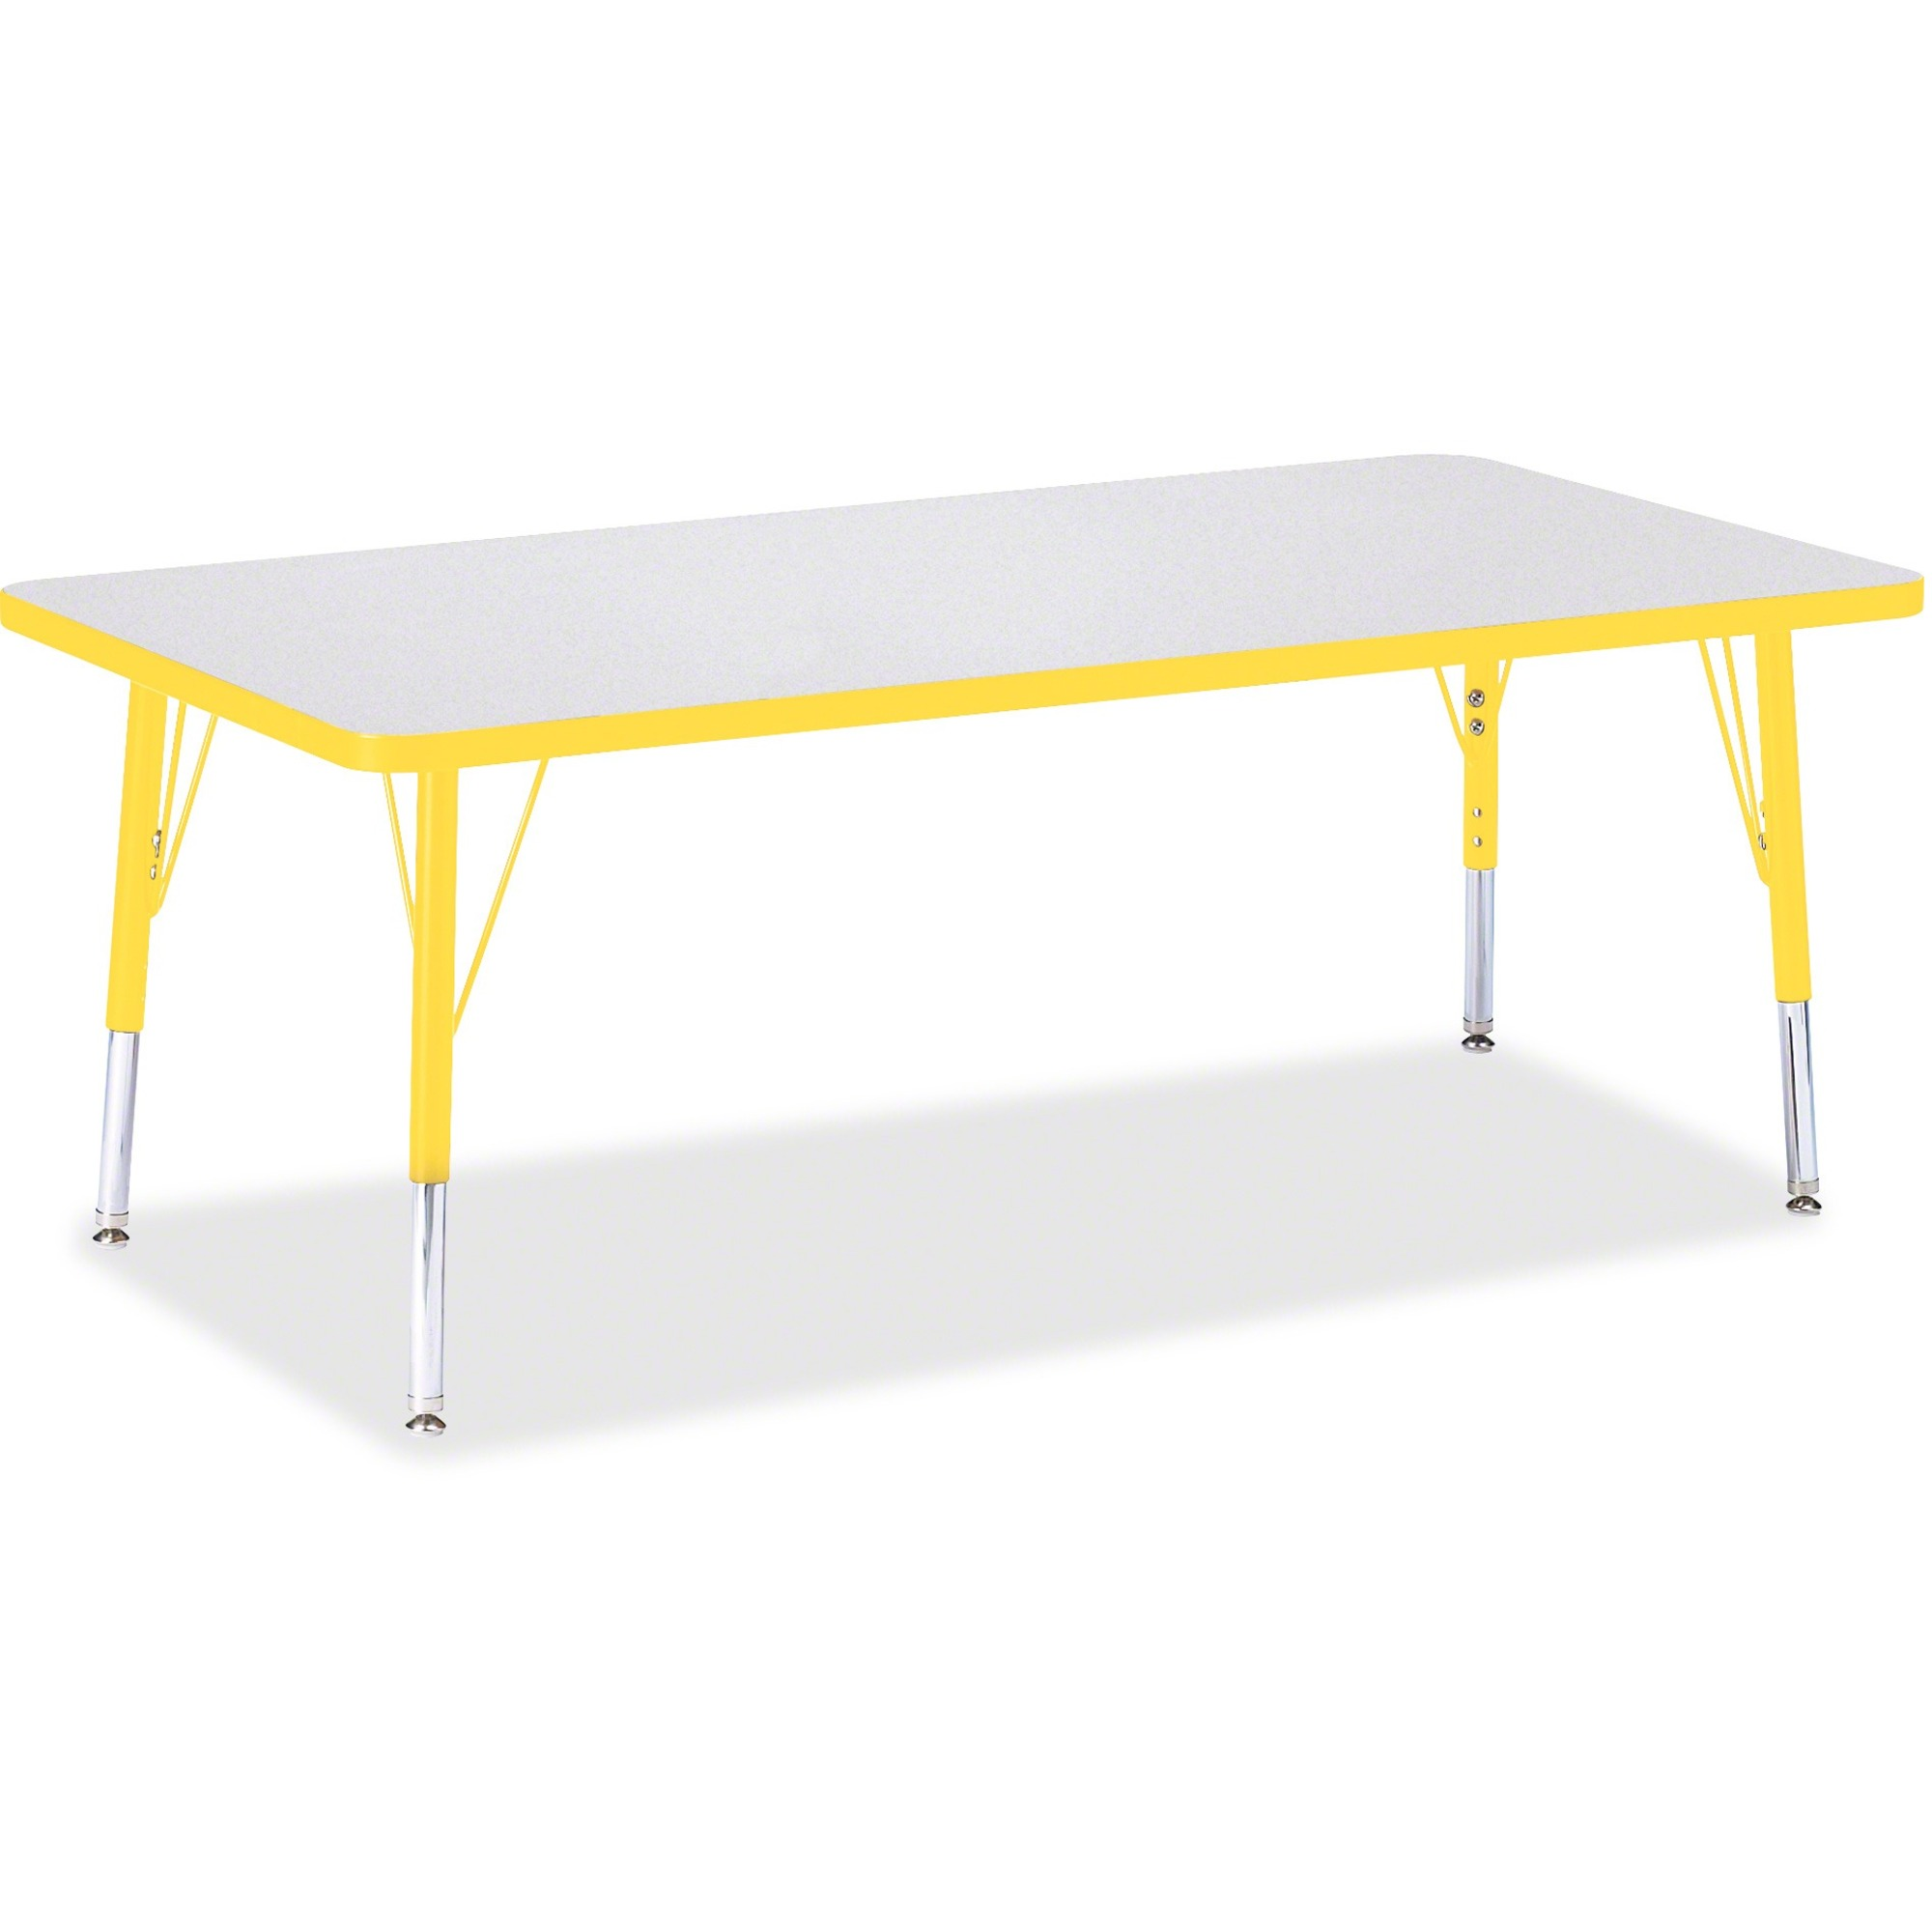 Jonti Craft Inc Berries Toddler Height Prism Edge Rectangle Table Rectangle Top Four Leg Base 4 Legs 60 Table Top Length X 30 Table Top Width